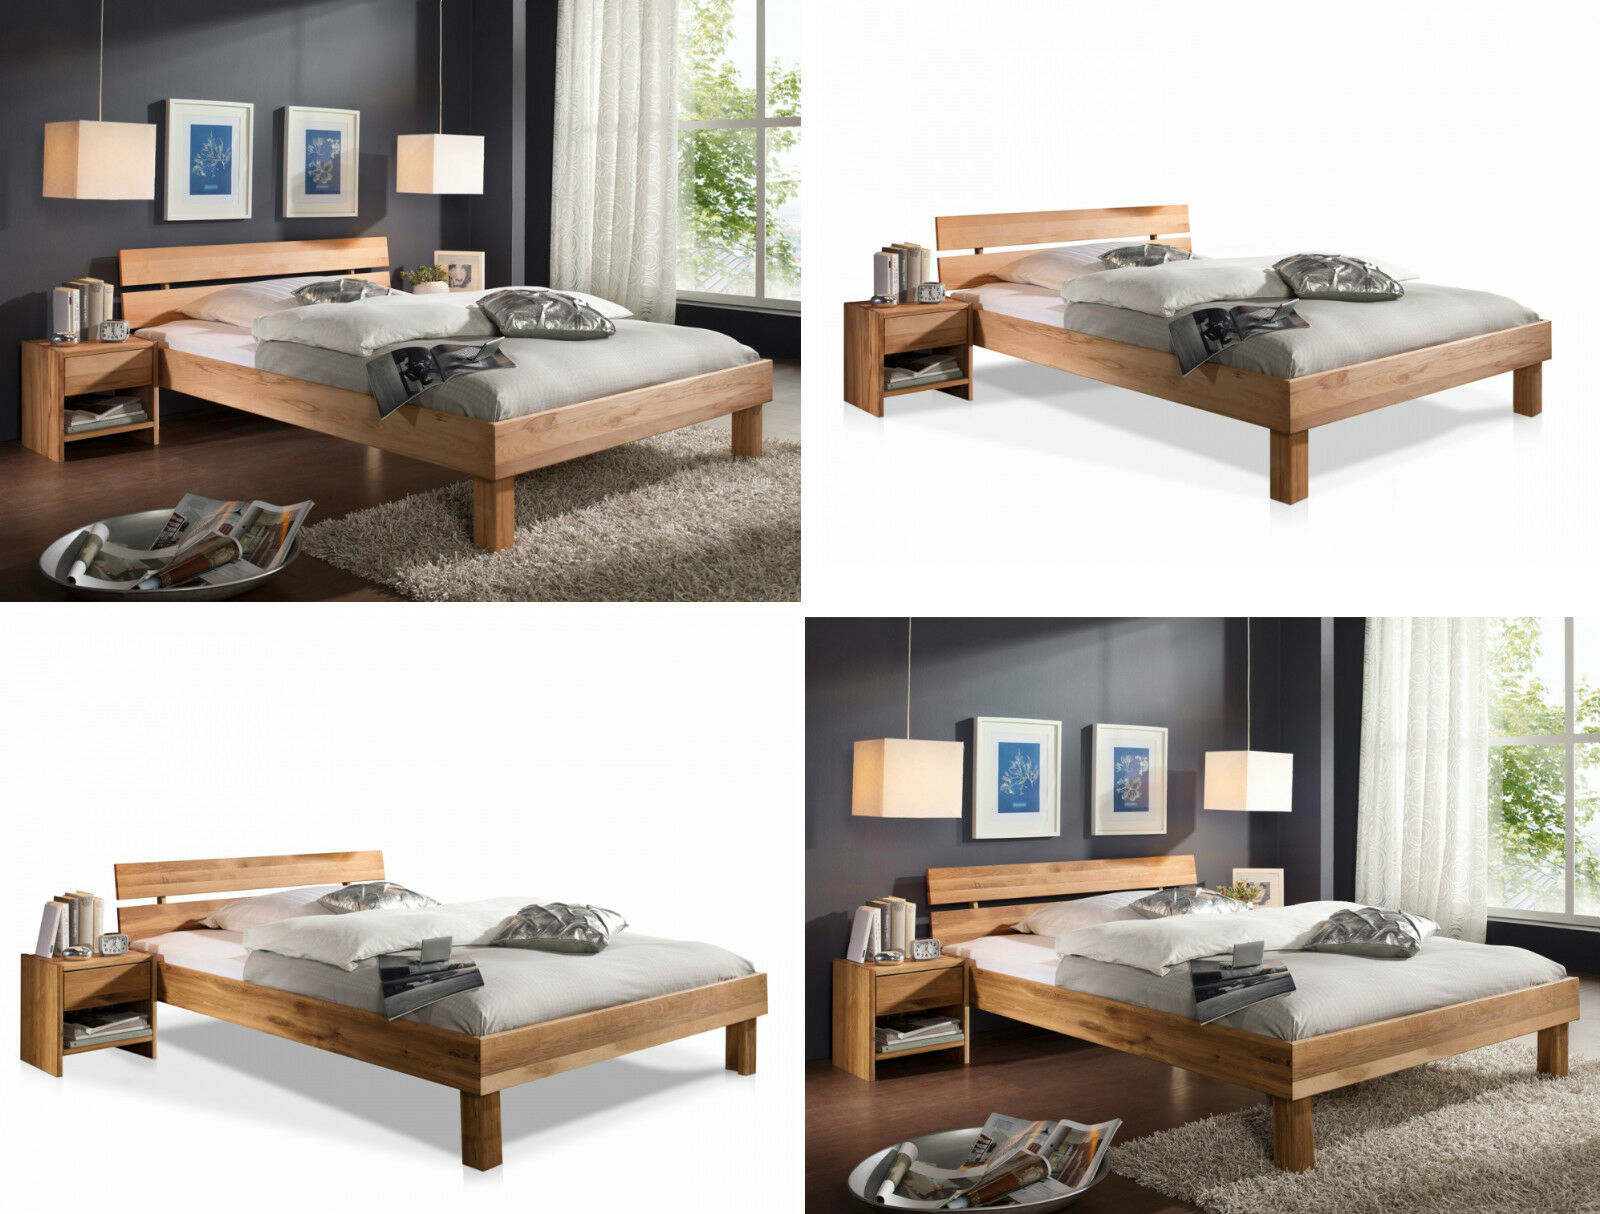 bett mit kopfteil holz massiv holzbett 100 140 160 180 x. Black Bedroom Furniture Sets. Home Design Ideas